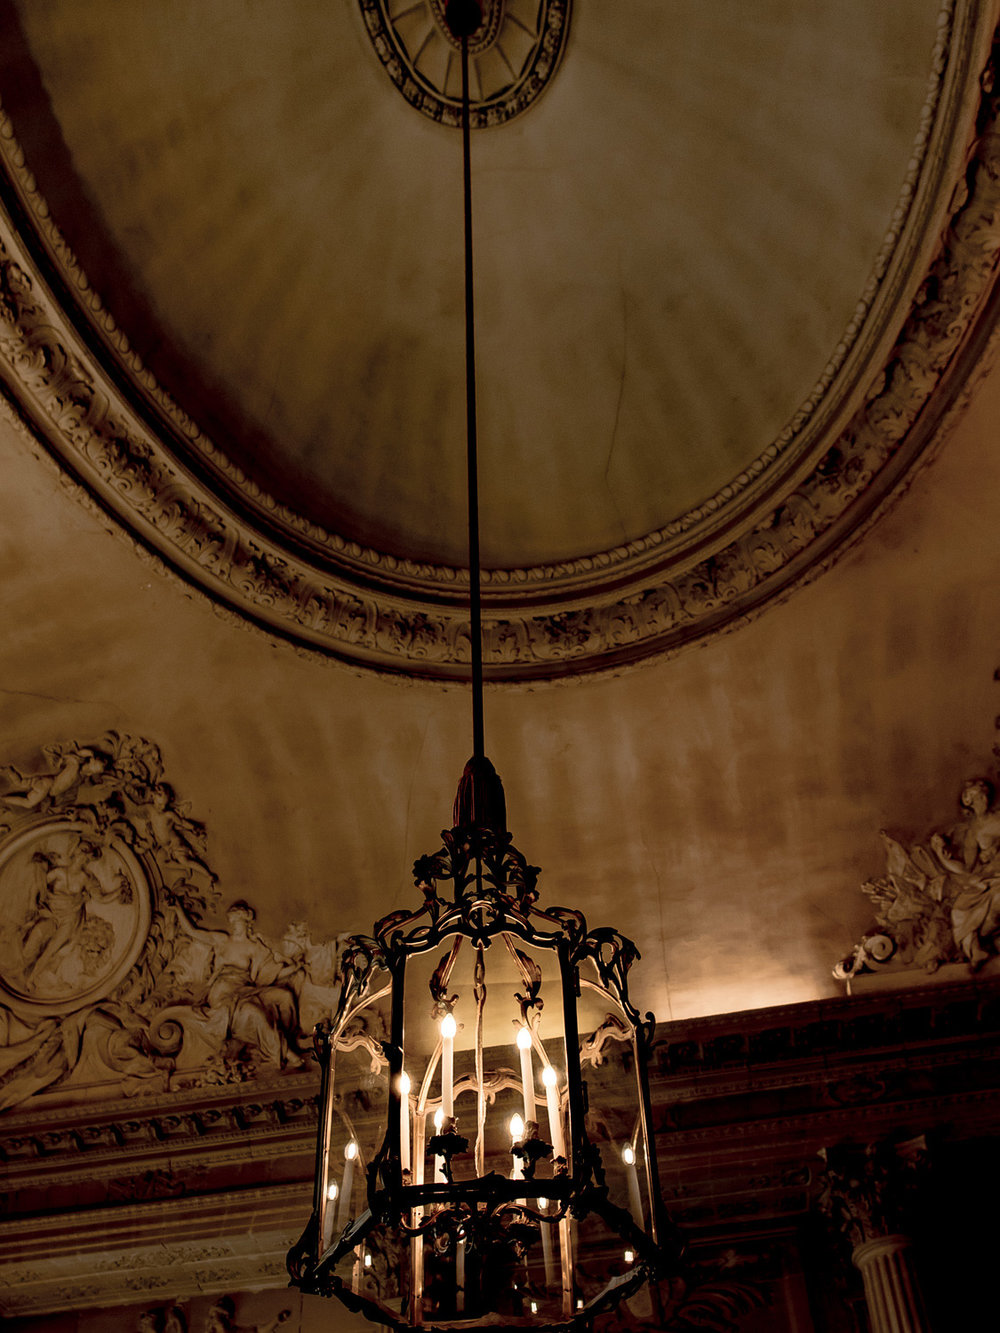 a lantern hangs from an ornate ceiling in the palace of versailles.